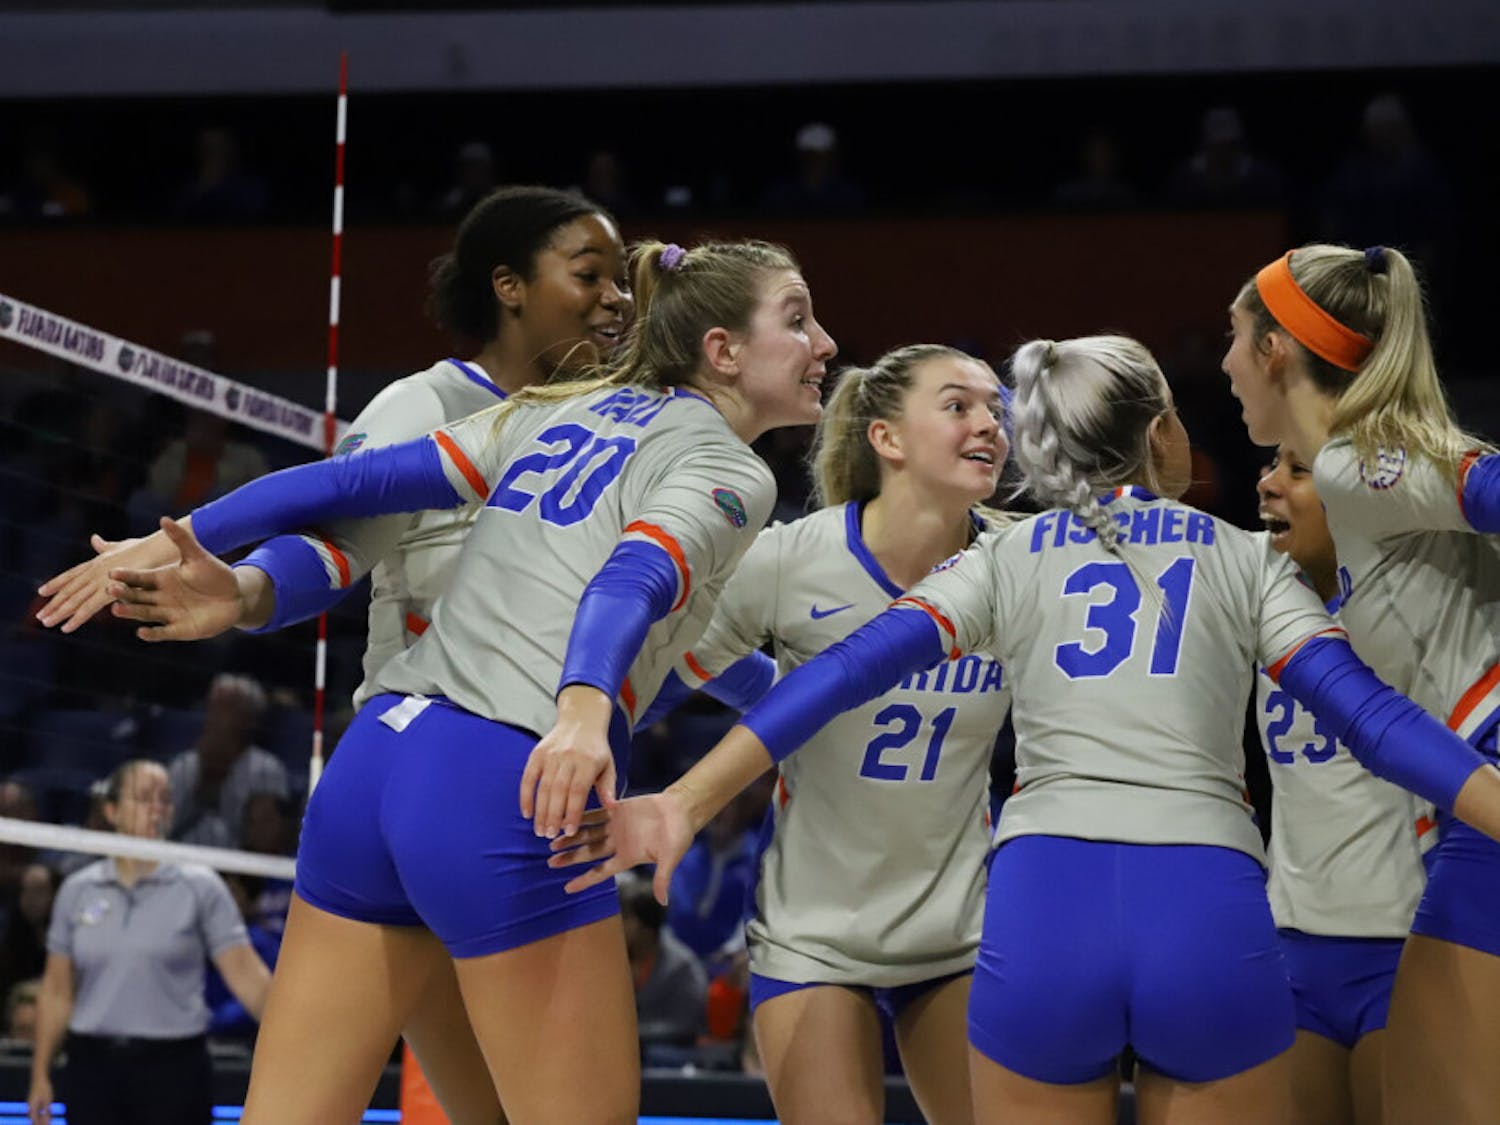 The Gators congregate in a huddle formation at their loss against LSU last season. UF will look to extend its seven-game winning streak against Arkansas.